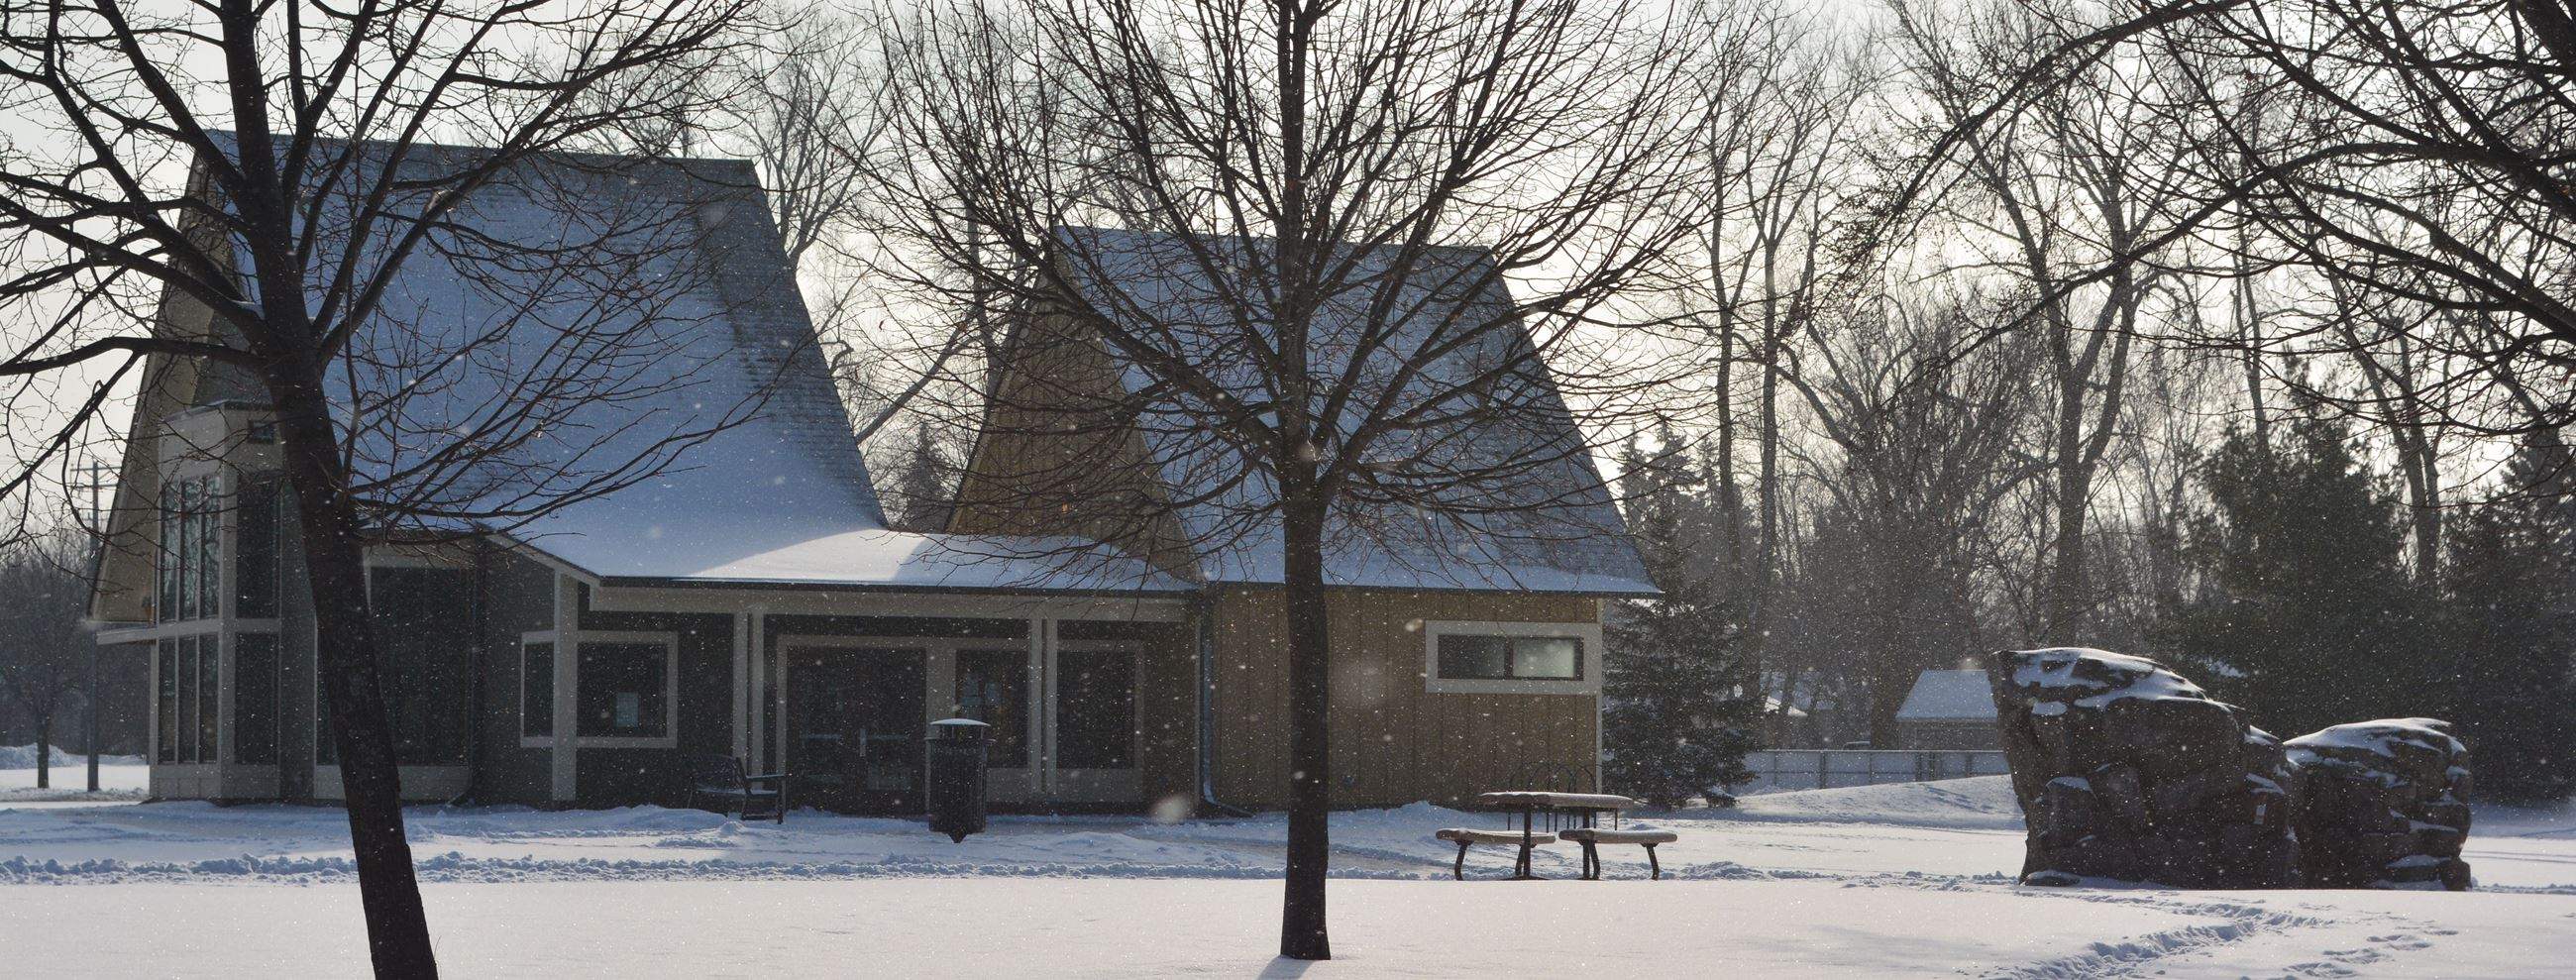 Lexington Park Building in Winter